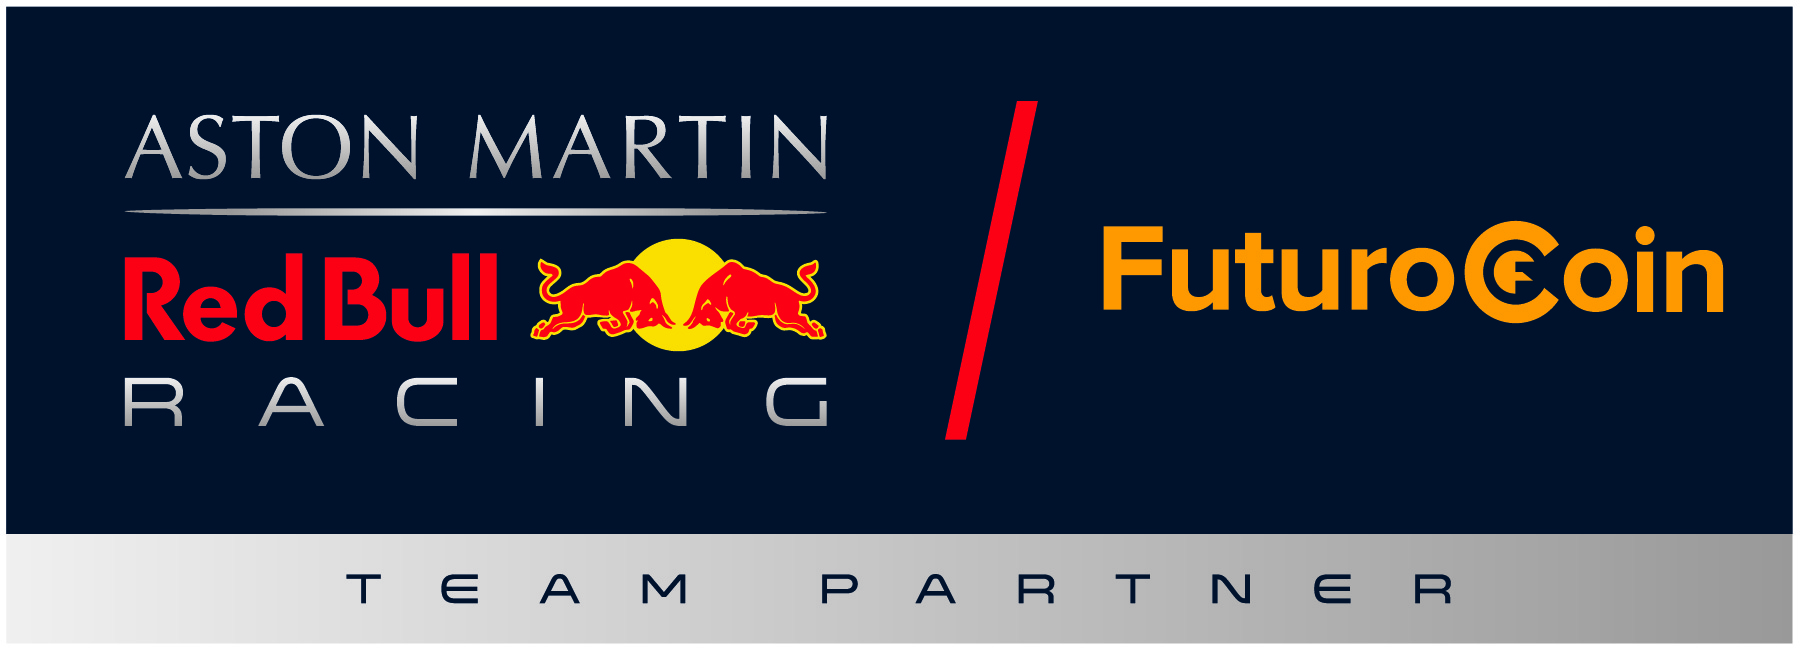 Futurocoin Unveiled As Partner Of Aston Martin Red Bull Racing In First Ever F1 Cryptocurrency Sponsorship The Merkle News